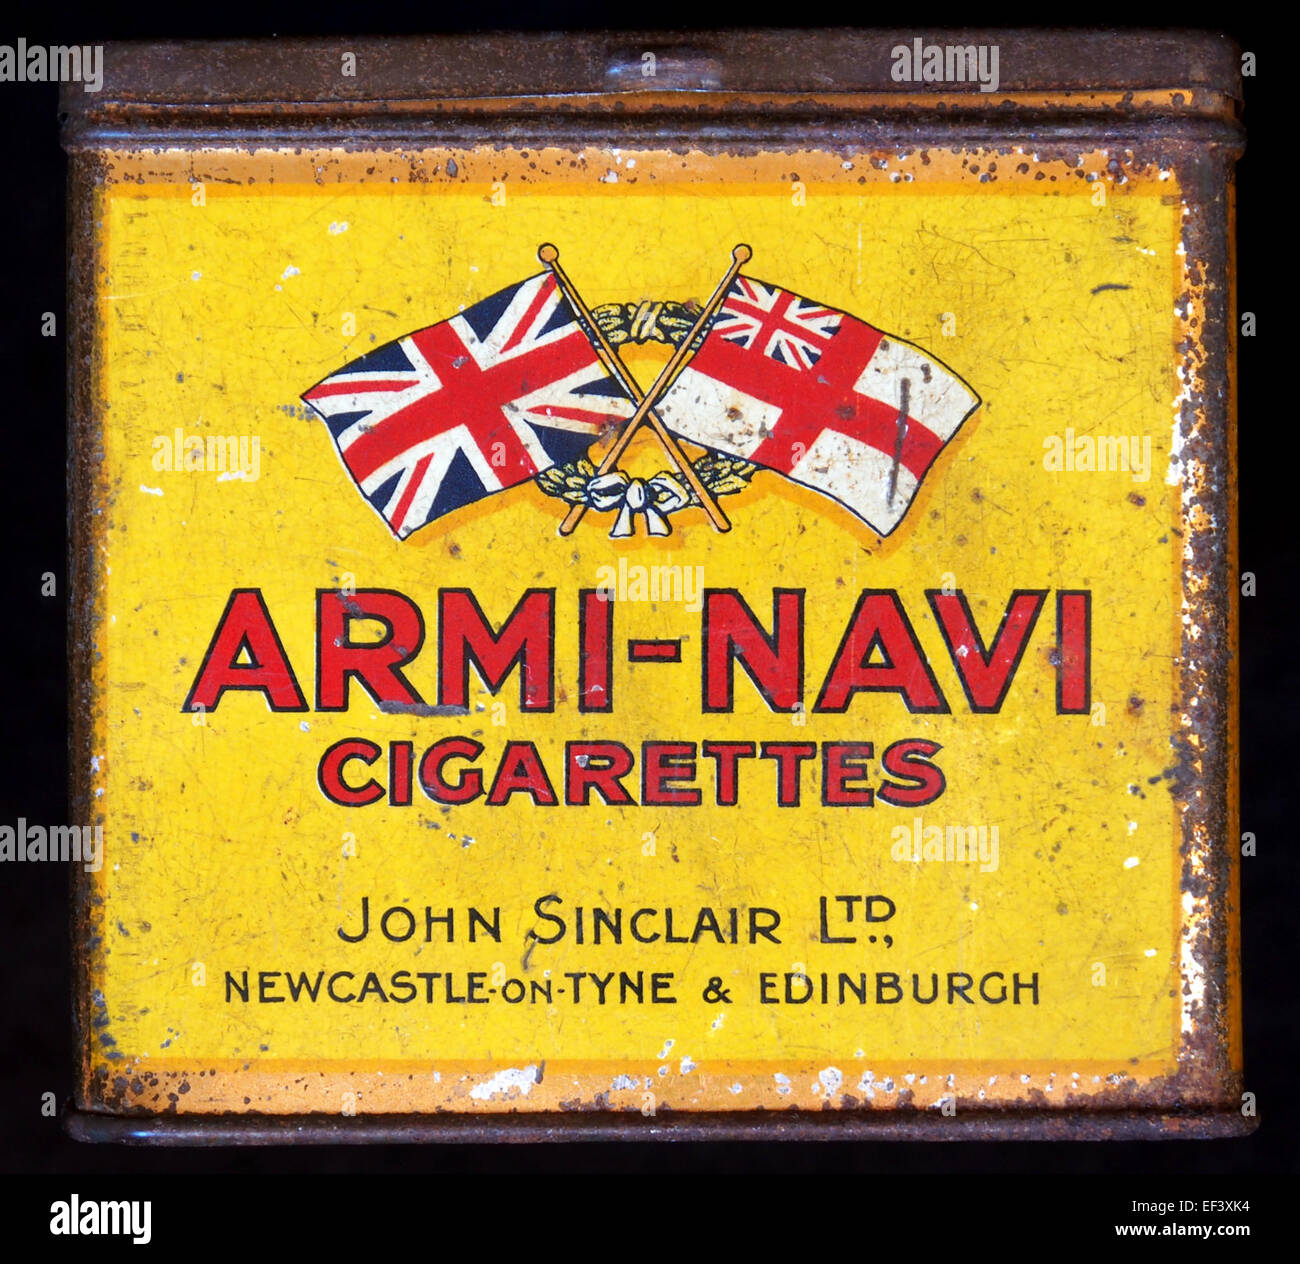 Armi-Navi cigarettes tin, John Sinclair Ltd, Newcastle-on-Tyne & Edinburgh - Stock Image